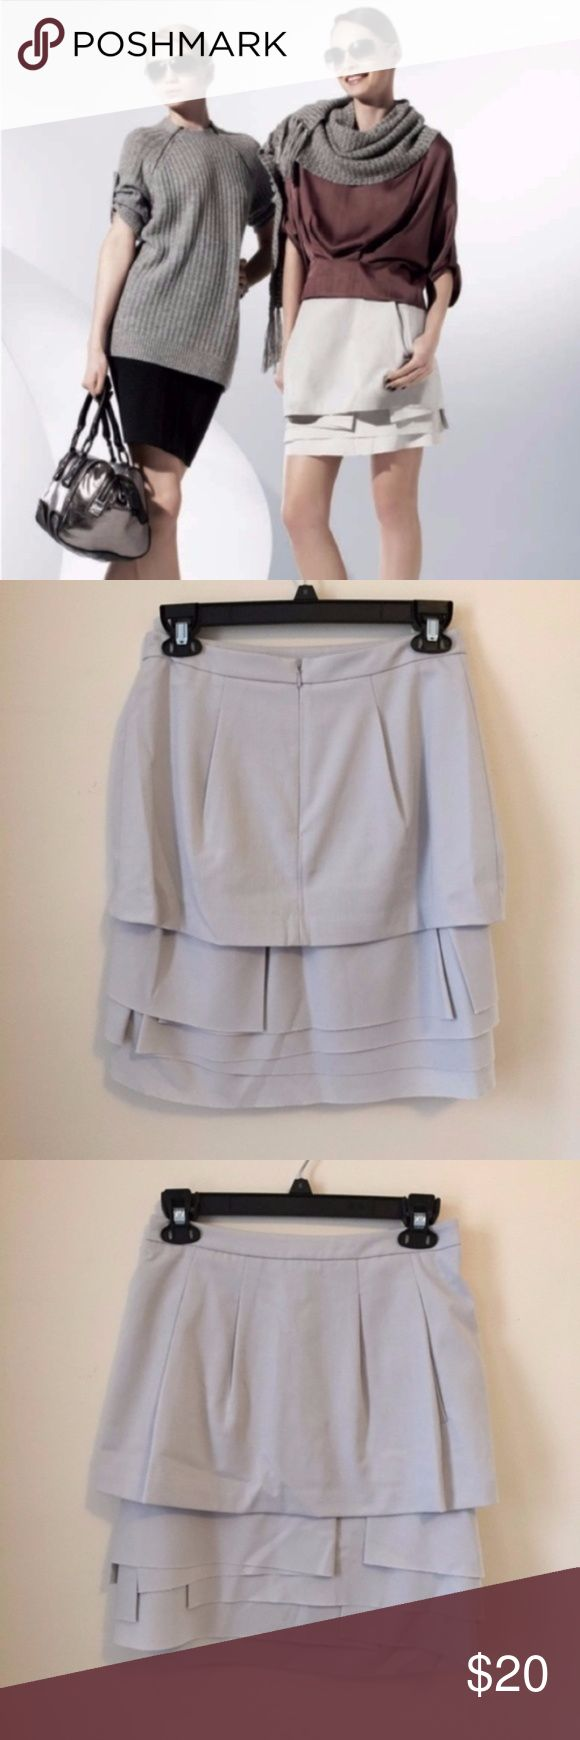 [SALE] BCBCMaxAzria Asymmetrical Tiered Skirt 2 Fantastic skirt from BCBGMaxAzria in a soft light grey color with asymmetrical layers and front pockets. Concealed zip in back. Sturdy construction.  Excellent condition. Size 2. BCBGMaxAzria Skirts Mini